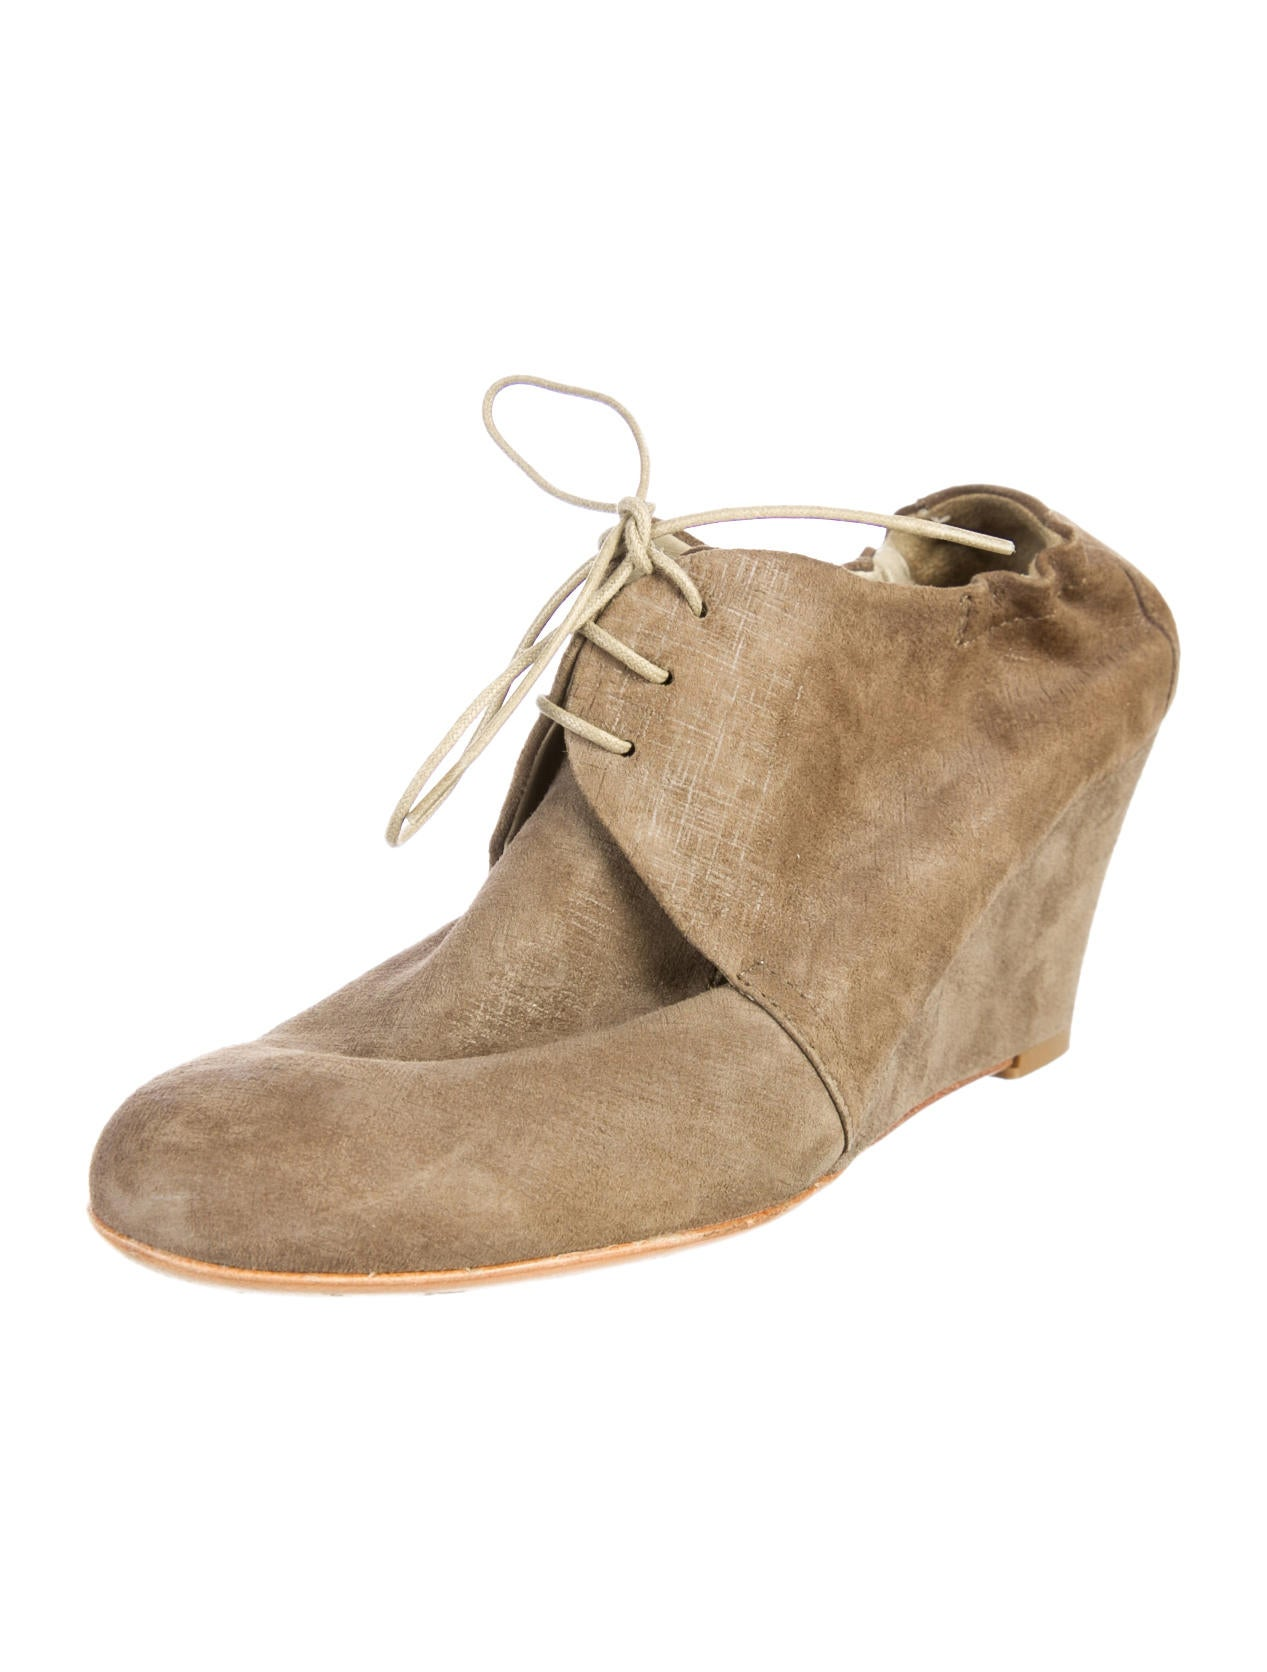 agl suede wedge booties shoes wagle20016 the realreal